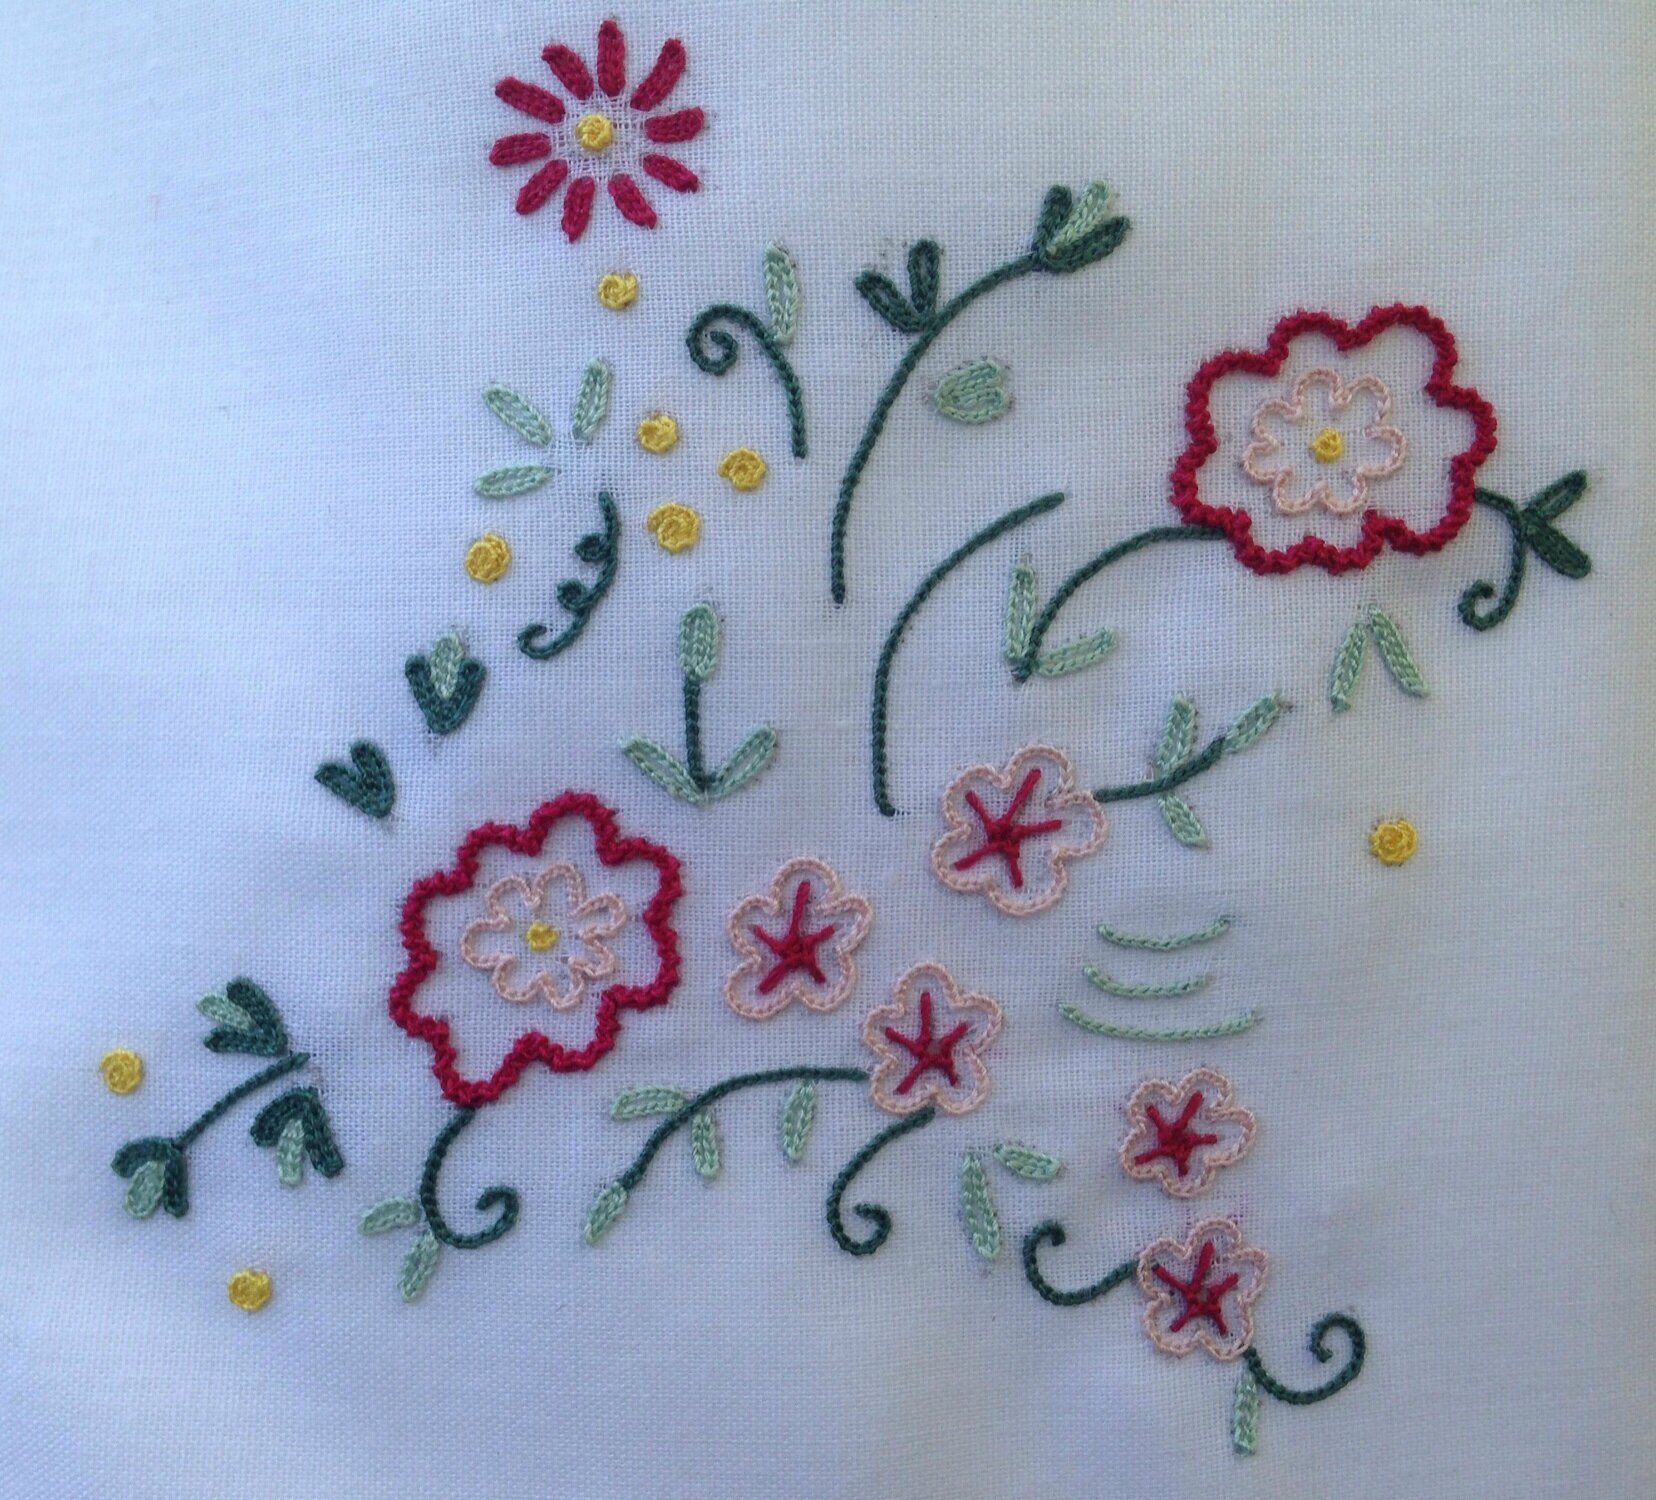 201402 BRODERIE LAURENCE